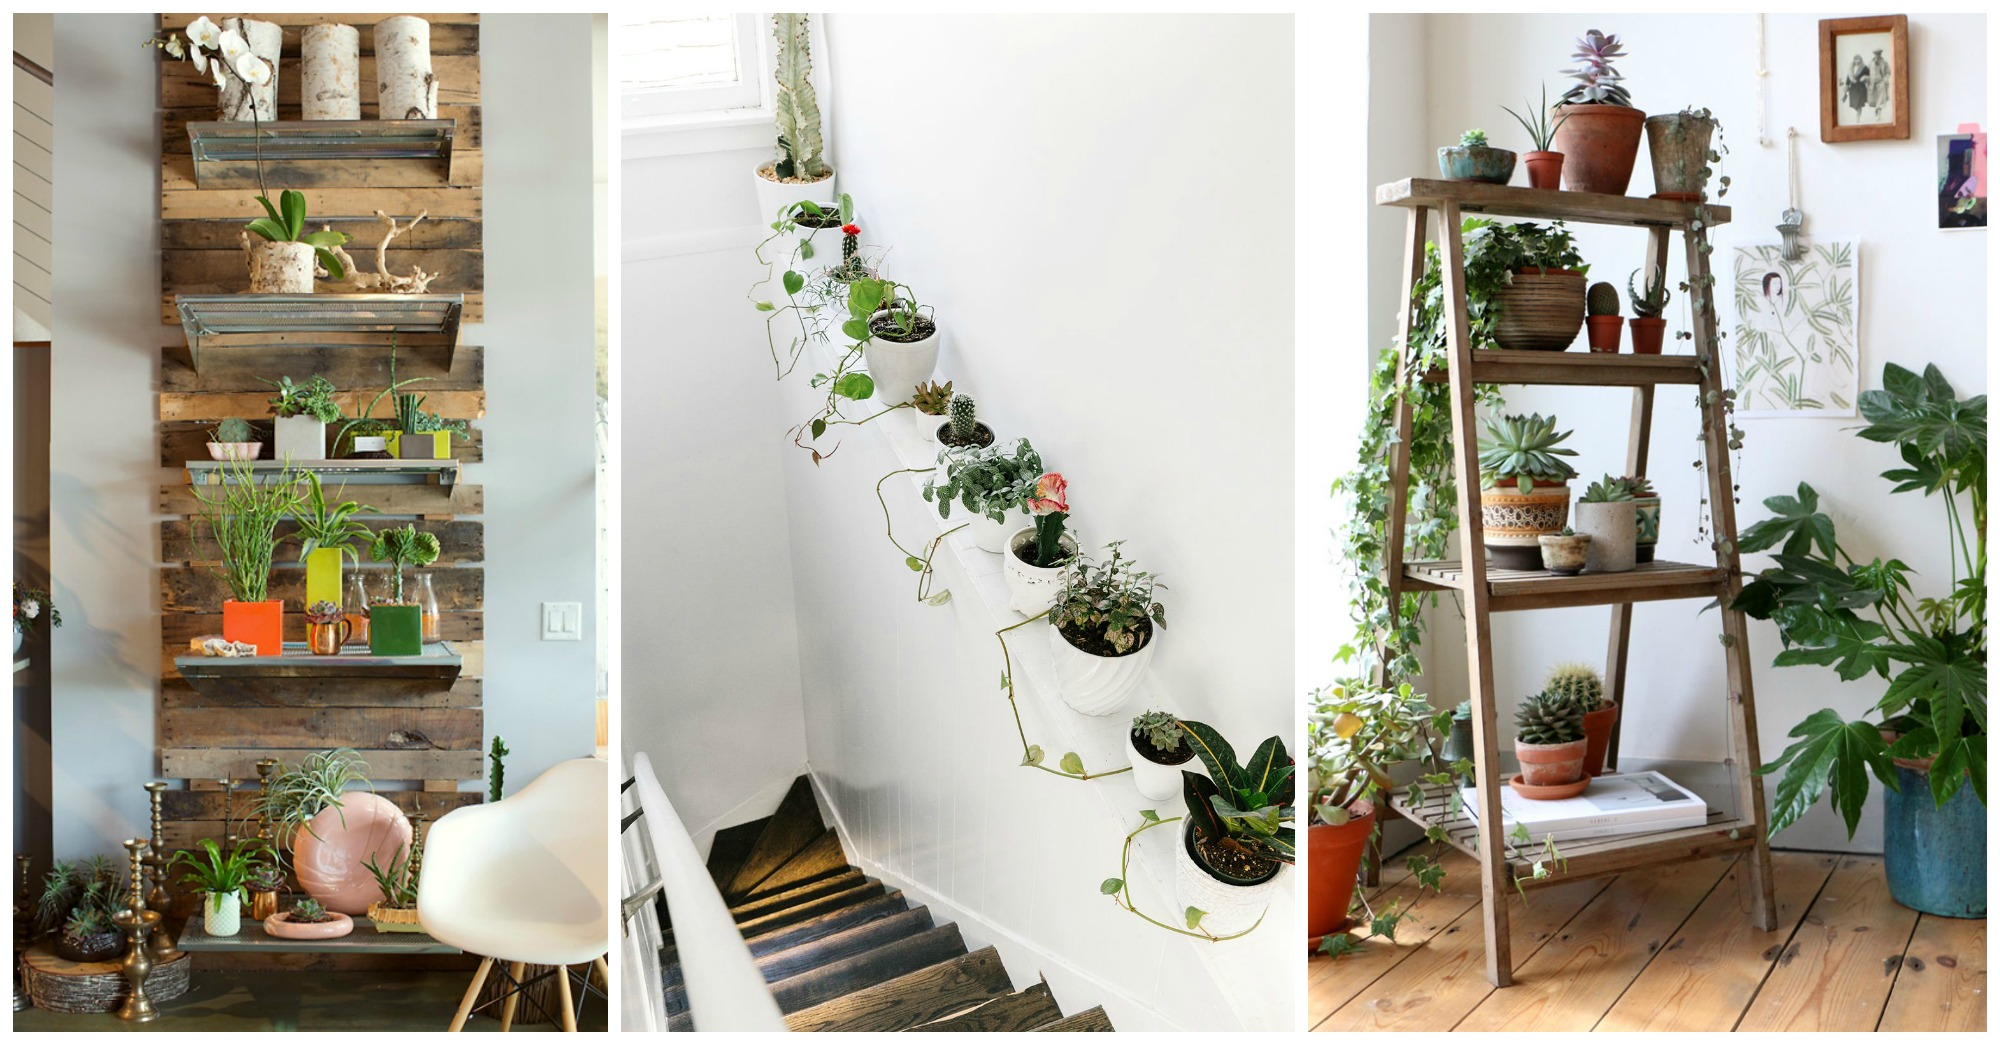 10 Unexpected Ways To Decorate Your Home With Plants